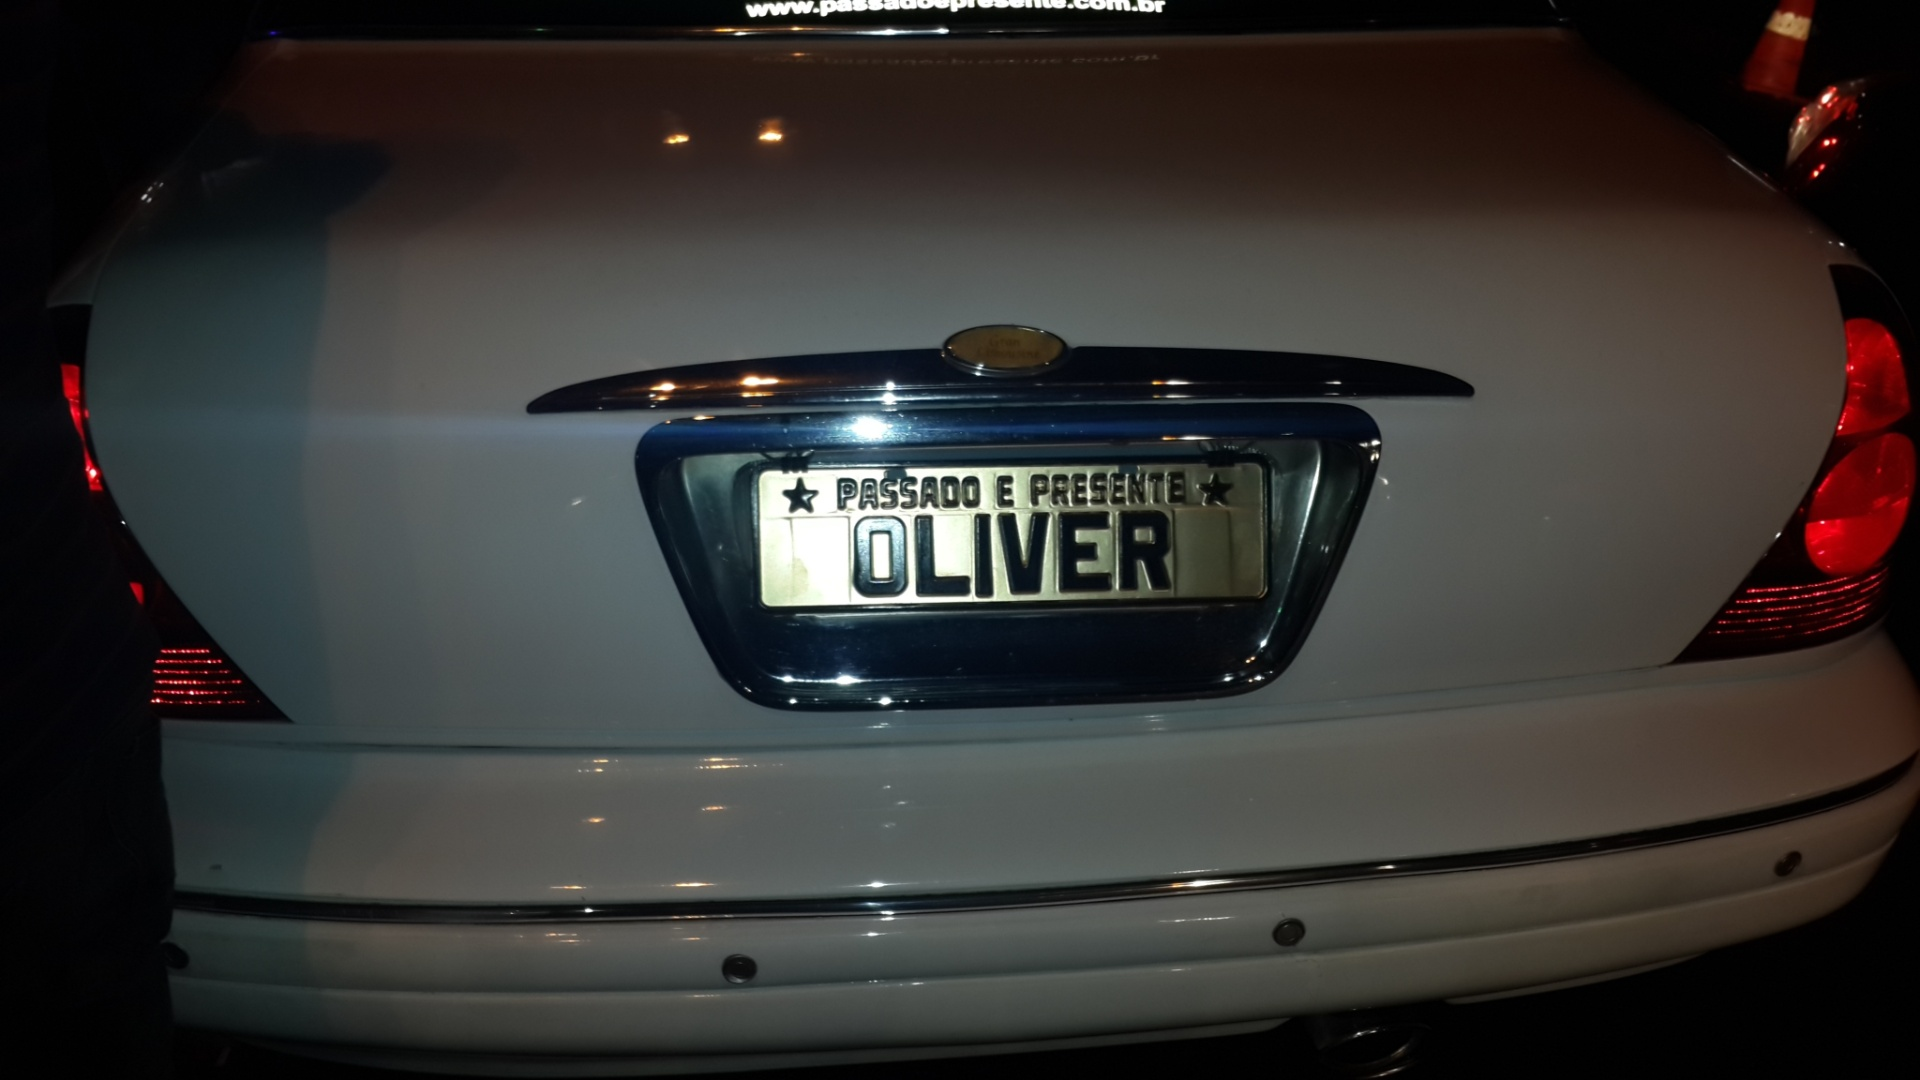 3.out.2013 - Detalhe da placa do carro do Marcos Oliver